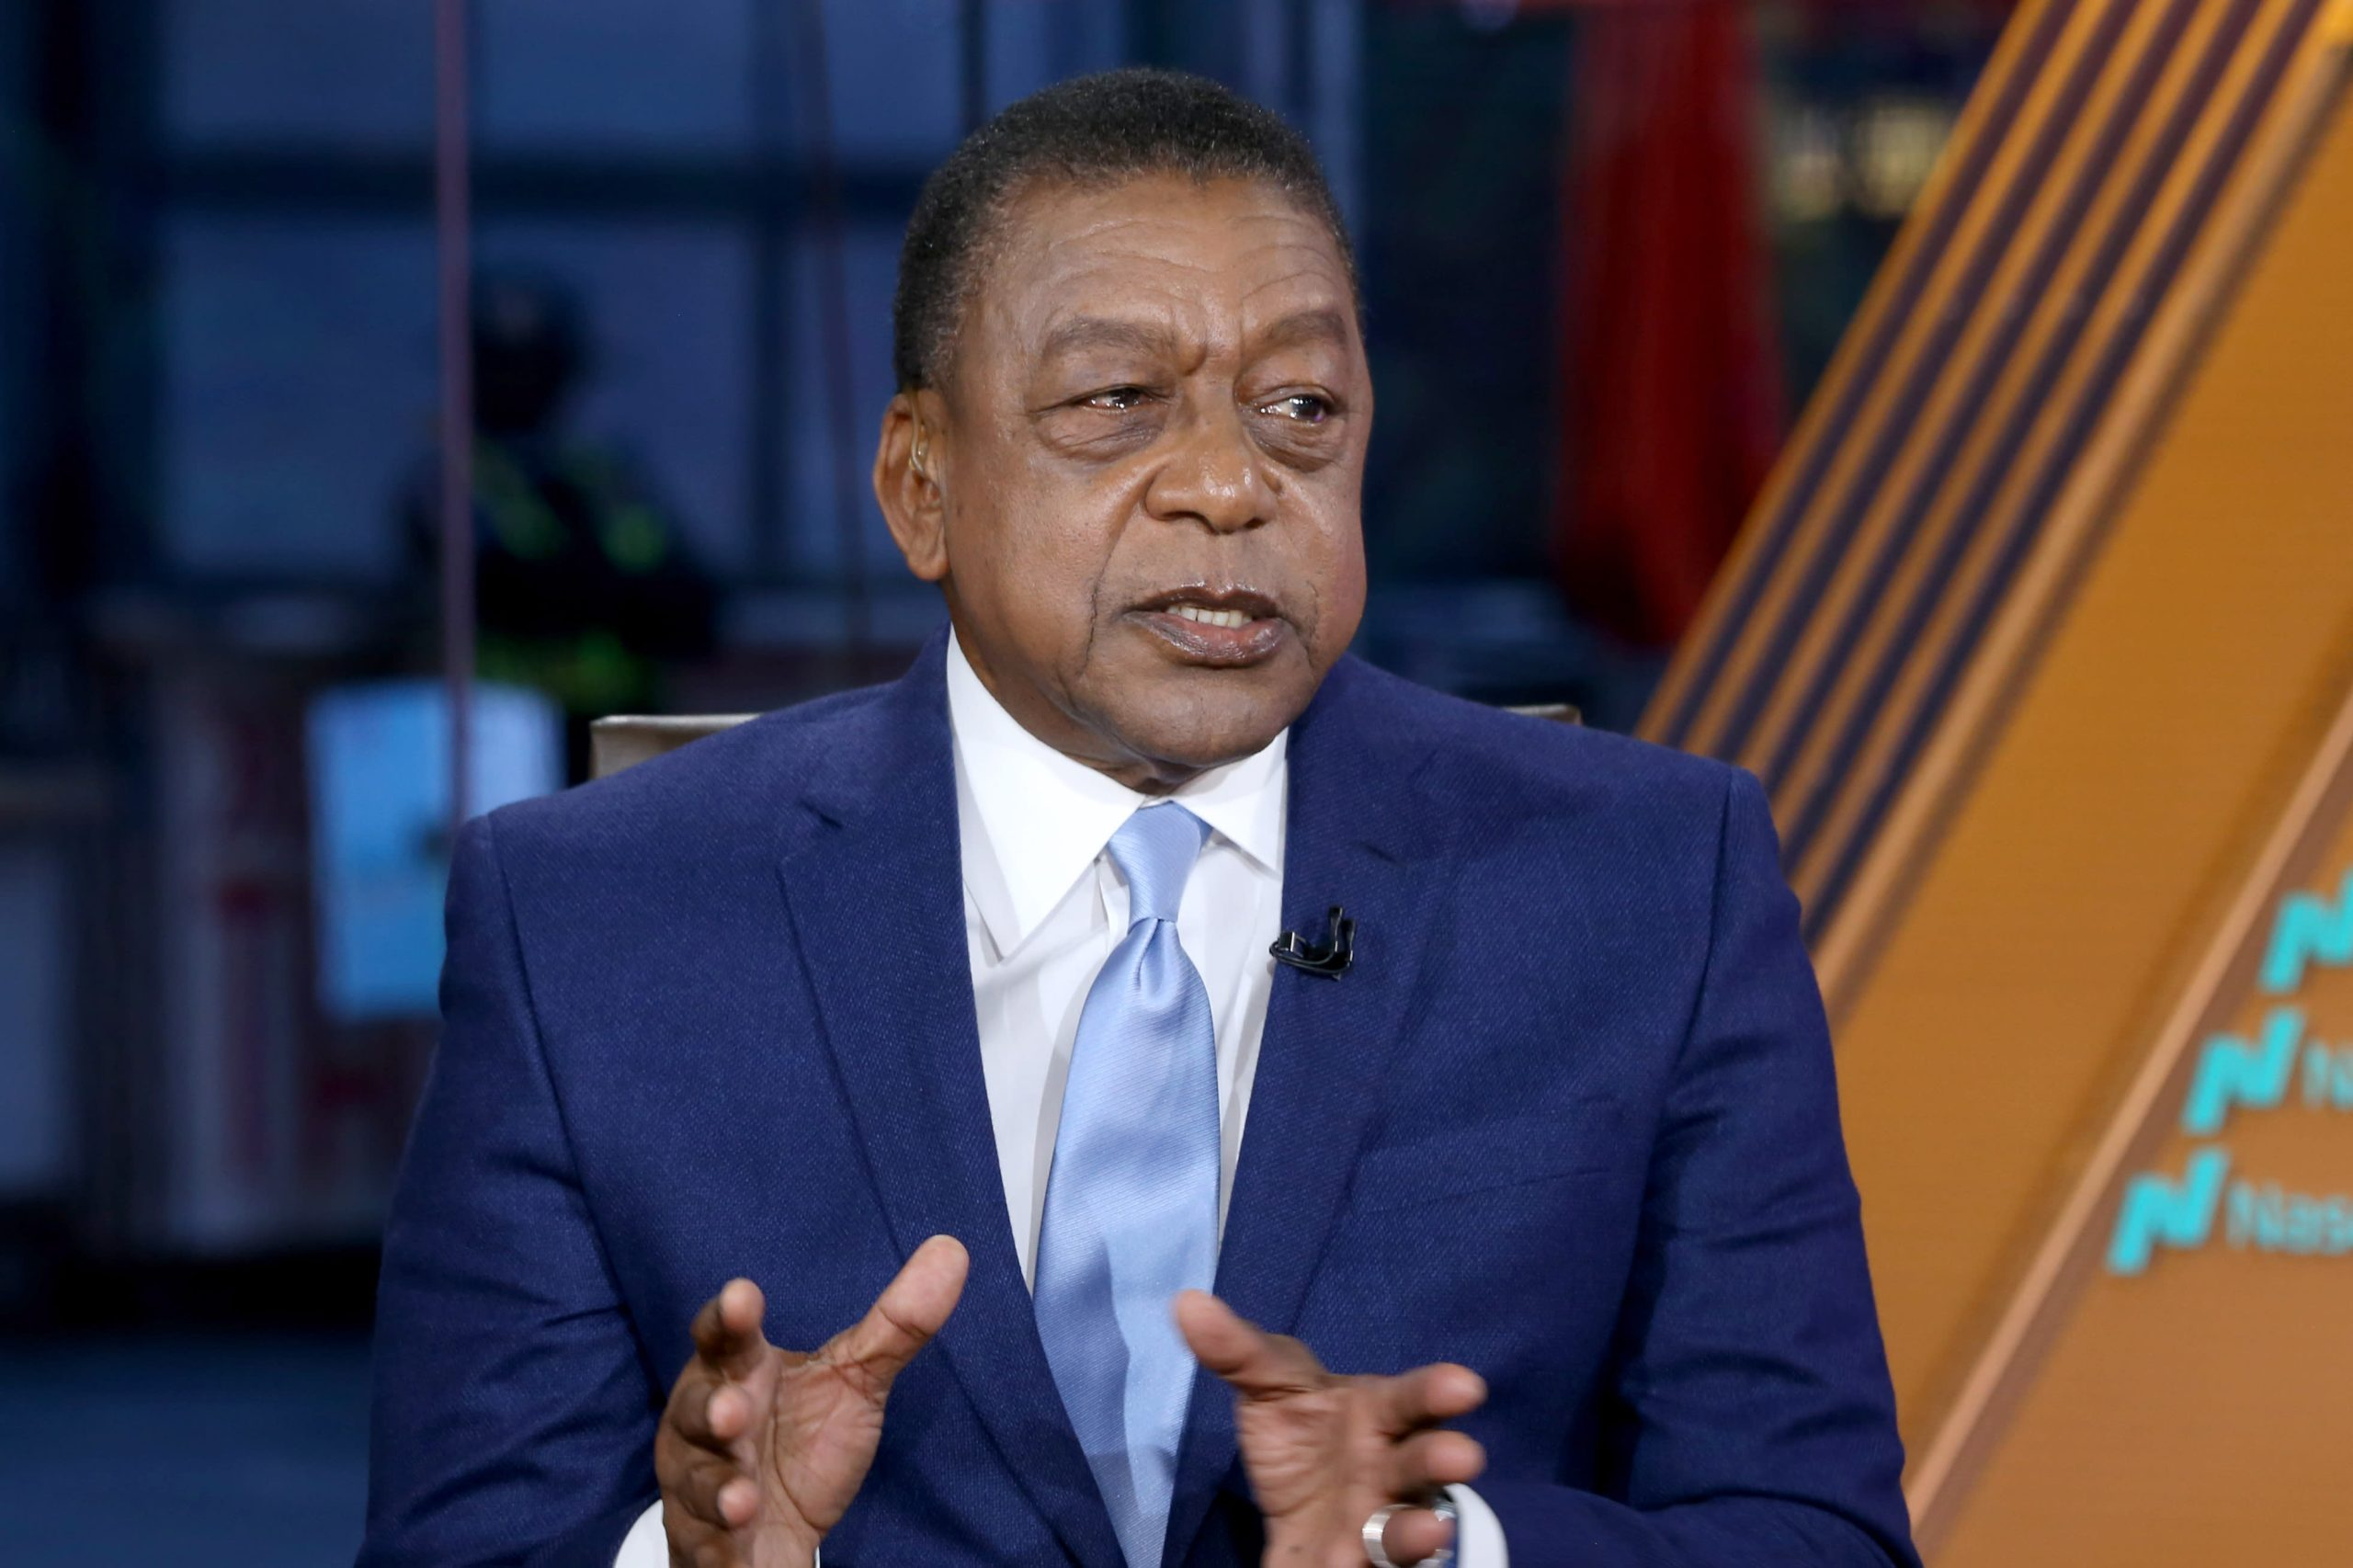 Latest News: 2020 US presidential election is Trump's to lose, says BET founder Bob Johnson – CNBC